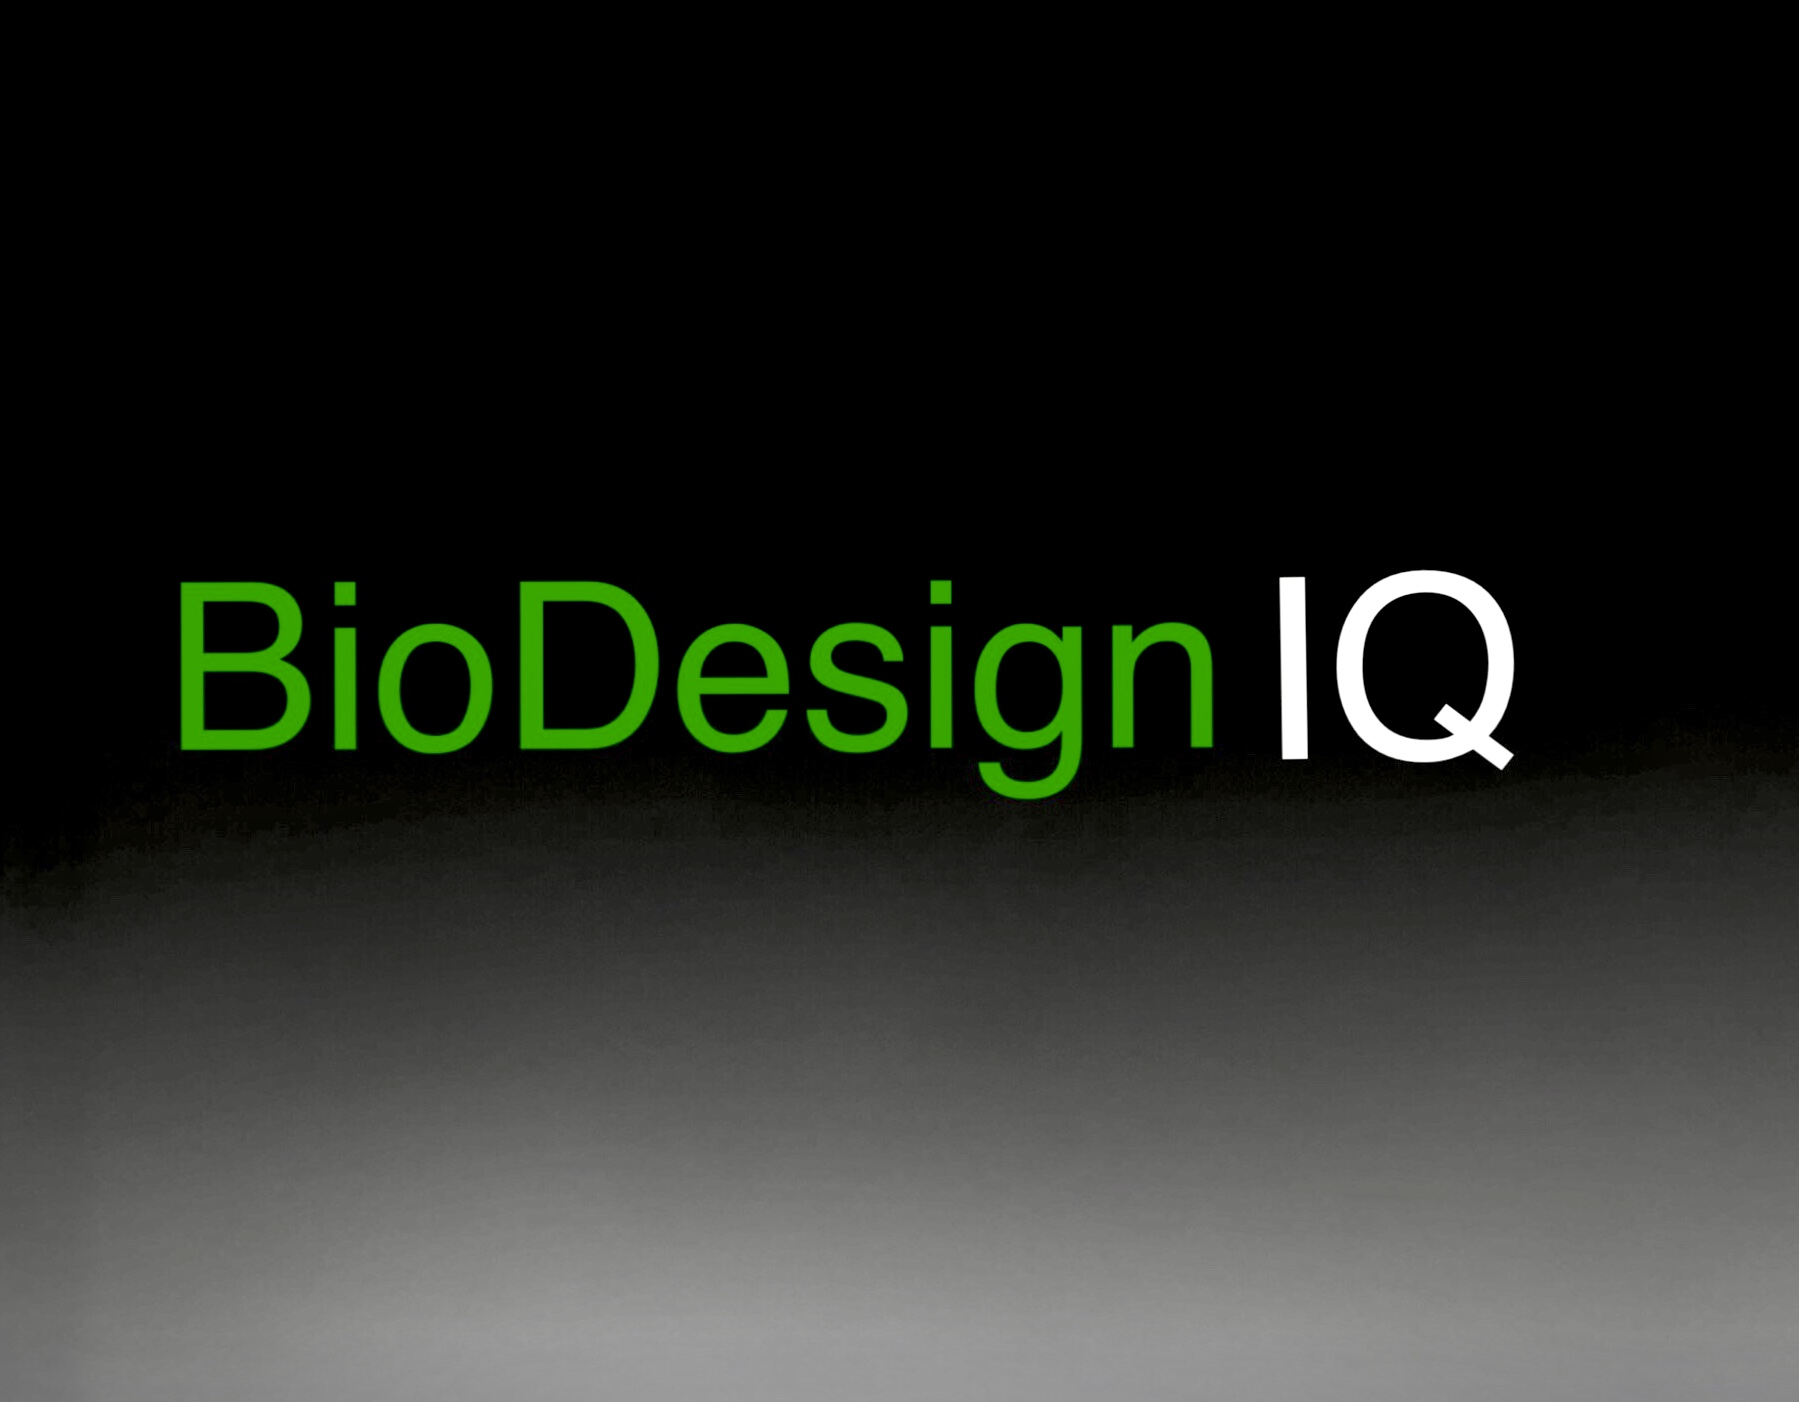 green and white text on a black backdrop reads BioDesignIQ